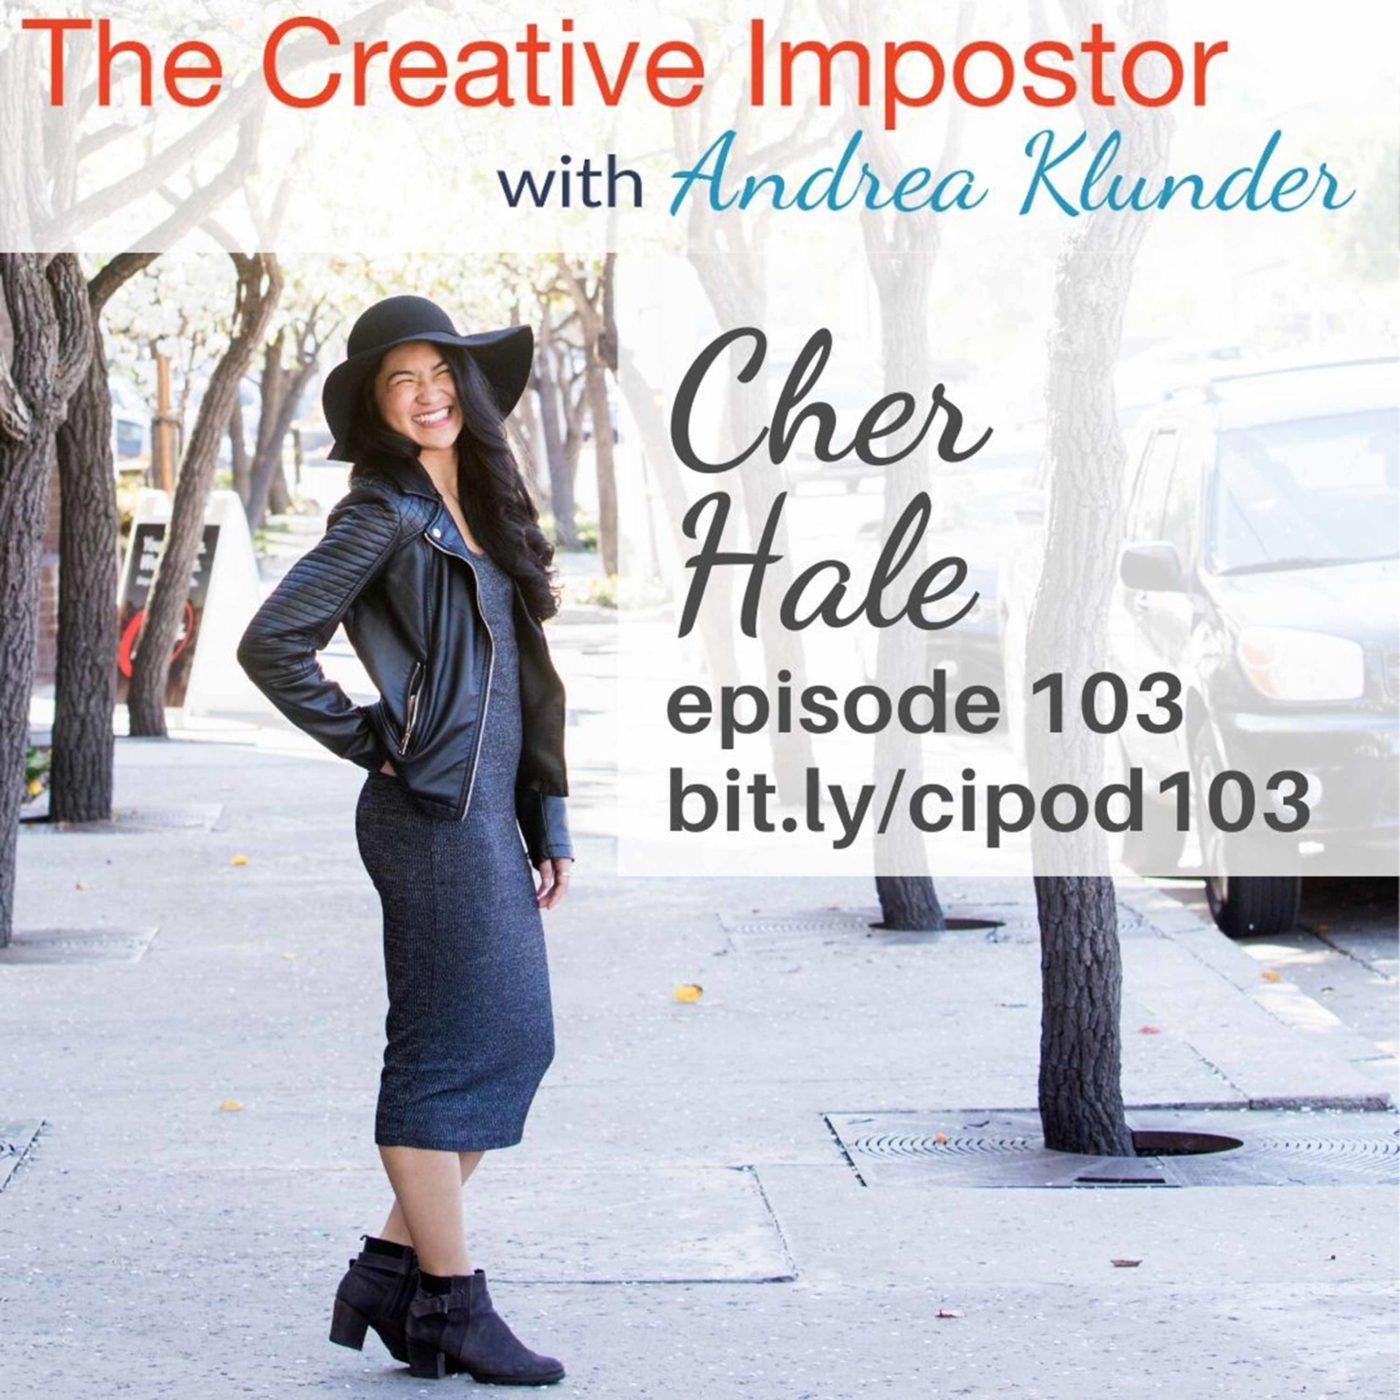 CI103: Pitch your true self with Cher Hale